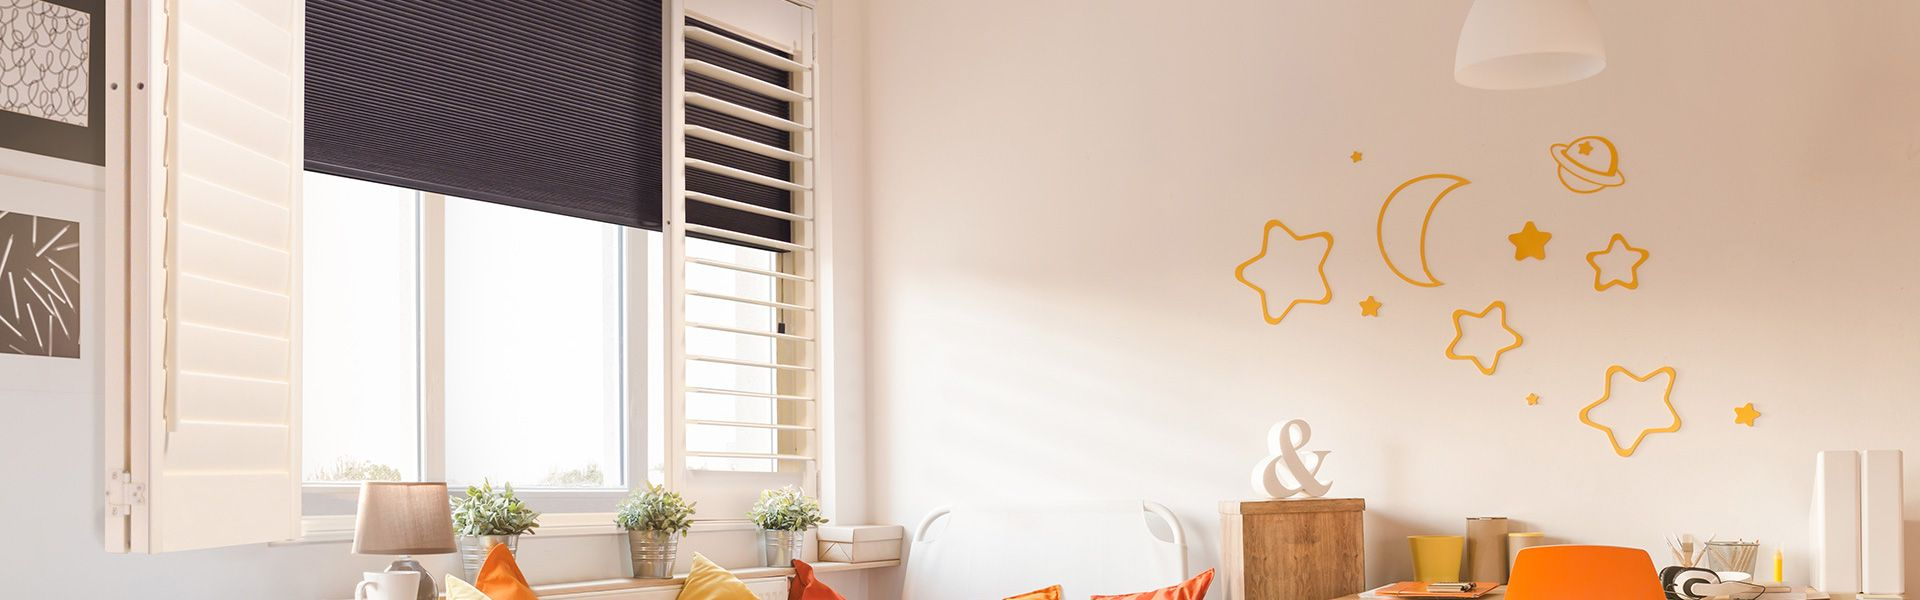 Room Darkening Blinds by Plantation Shutters Ltd